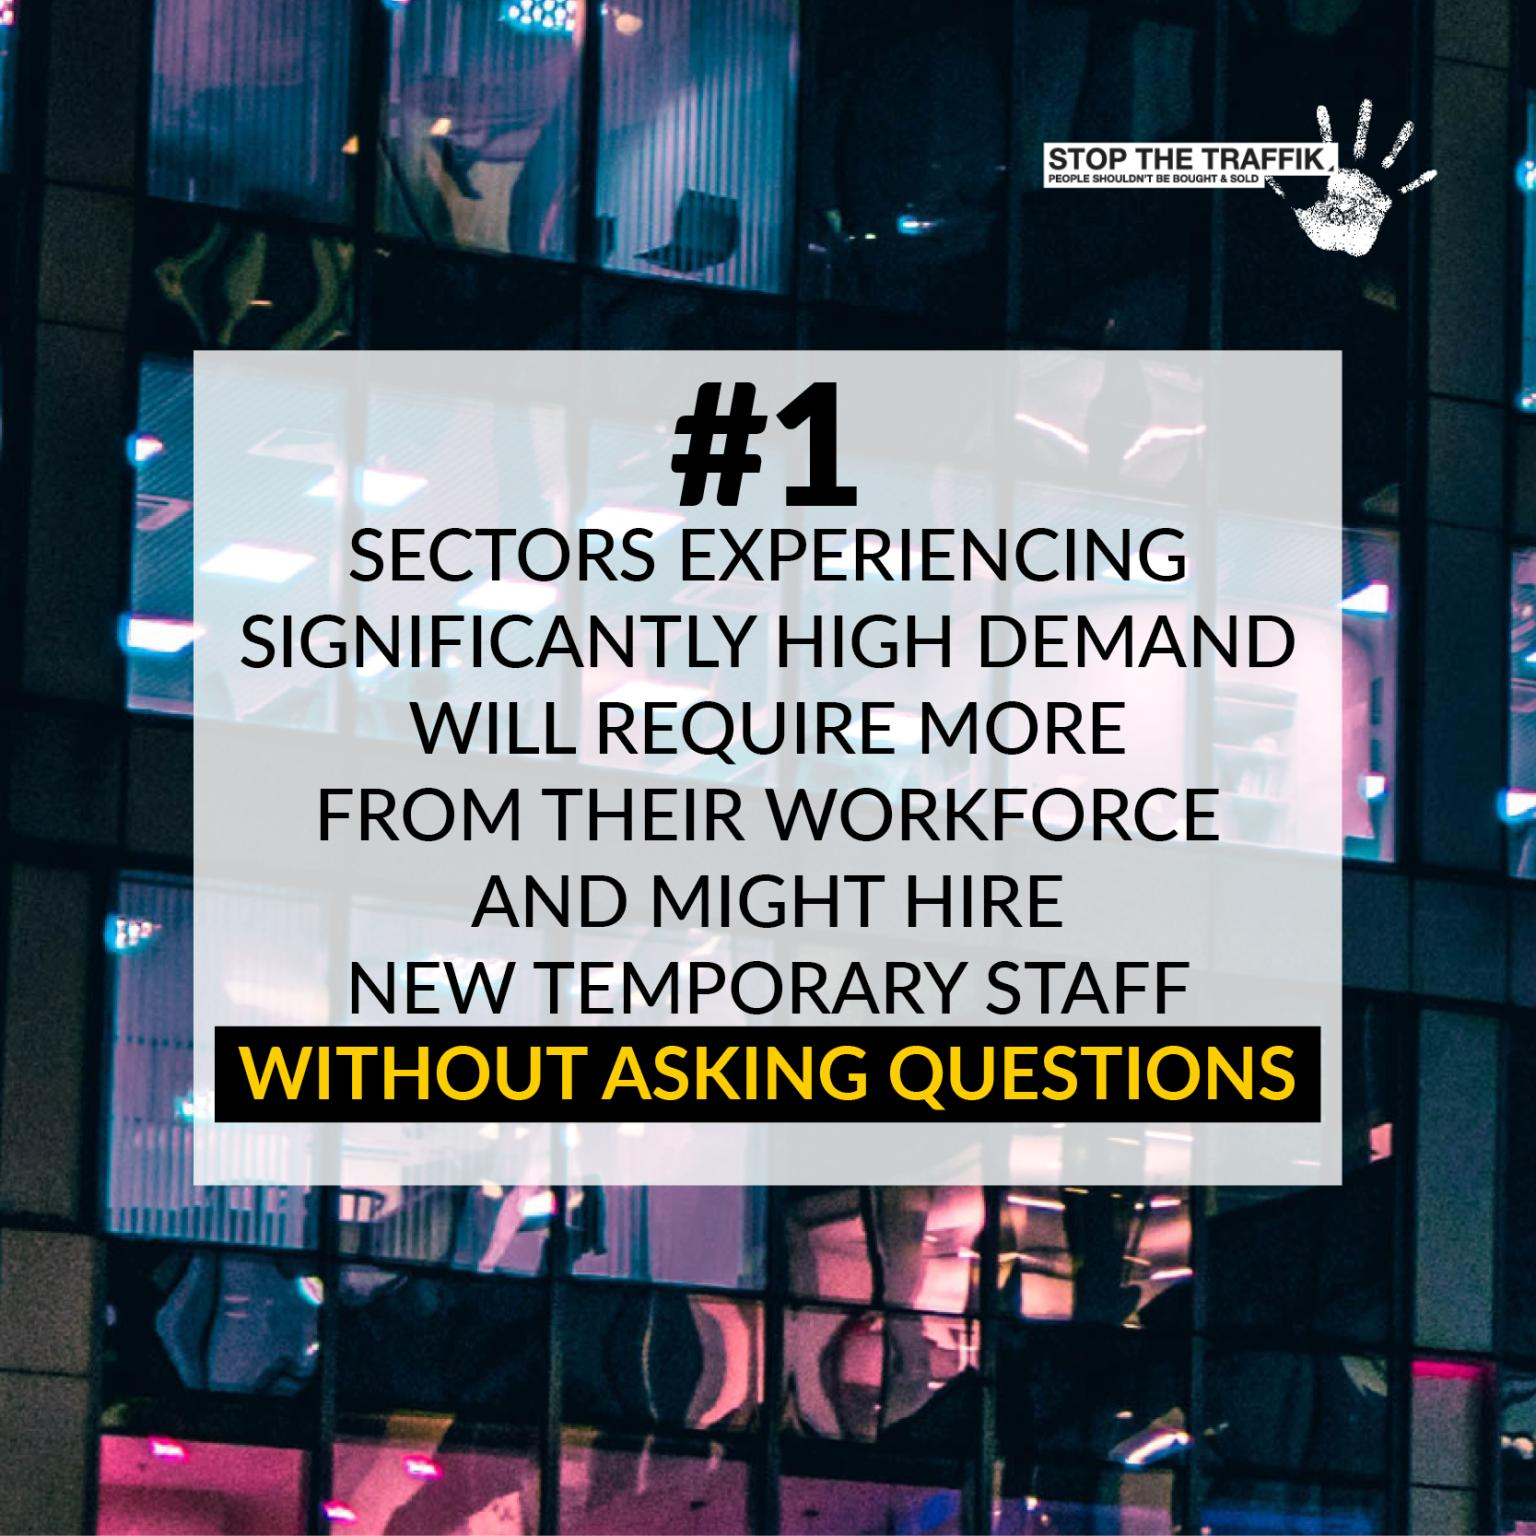 Sectors experiencing significantly high-demand will demand more from their workforce and might hire new temporary staff without asking questions.